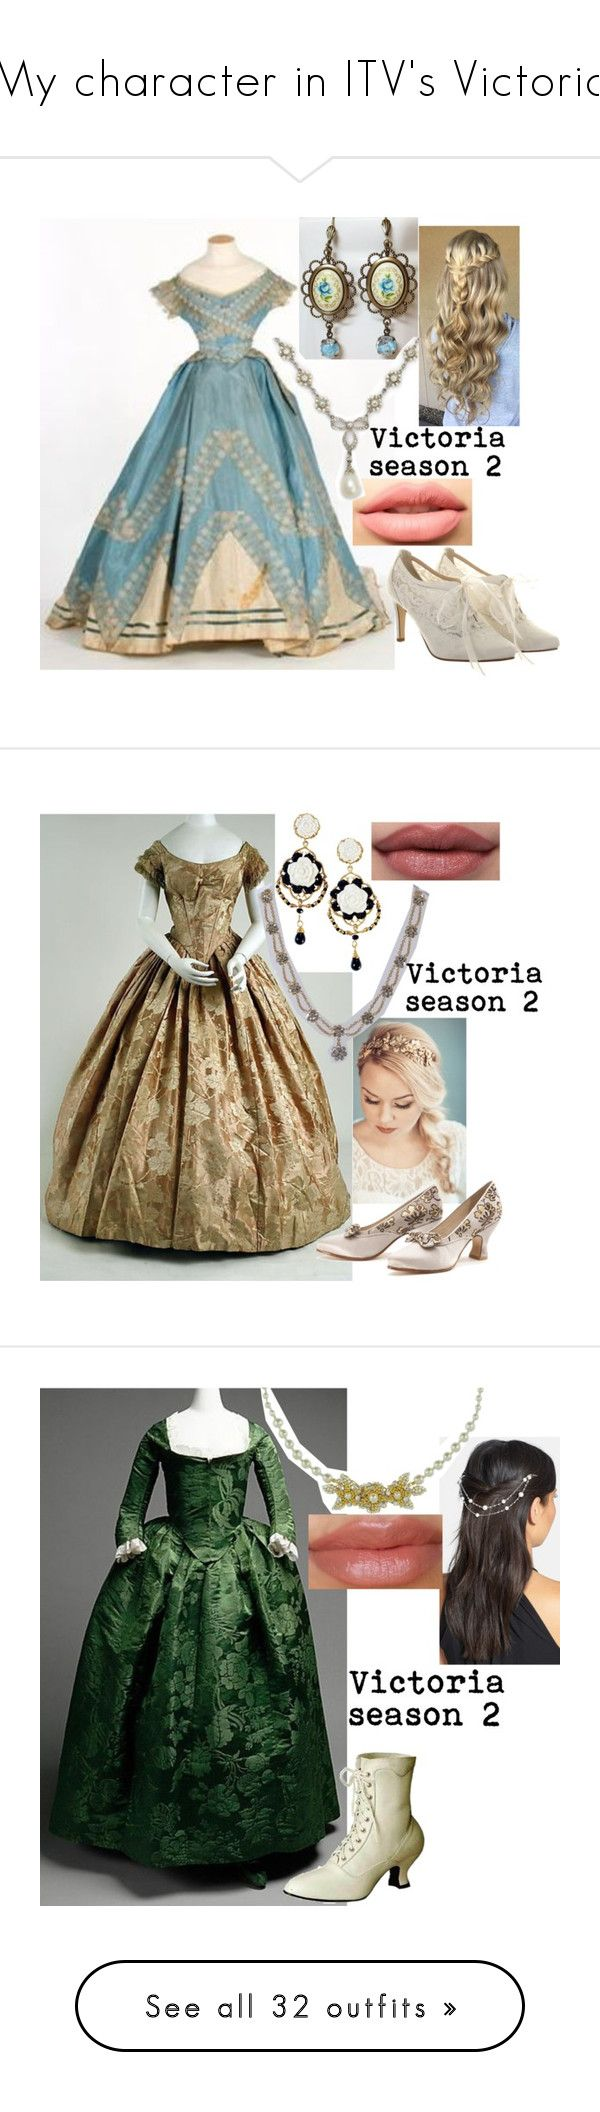 """My character in ITV's Victoria"" by sophie-swan ❤ liked on Polyvore featuring Rainbow Club, LASplash, Poporcelain, Berry, Miriam Haskell, Favero, Zara Taylor, 1928, Menbur and David Webb"